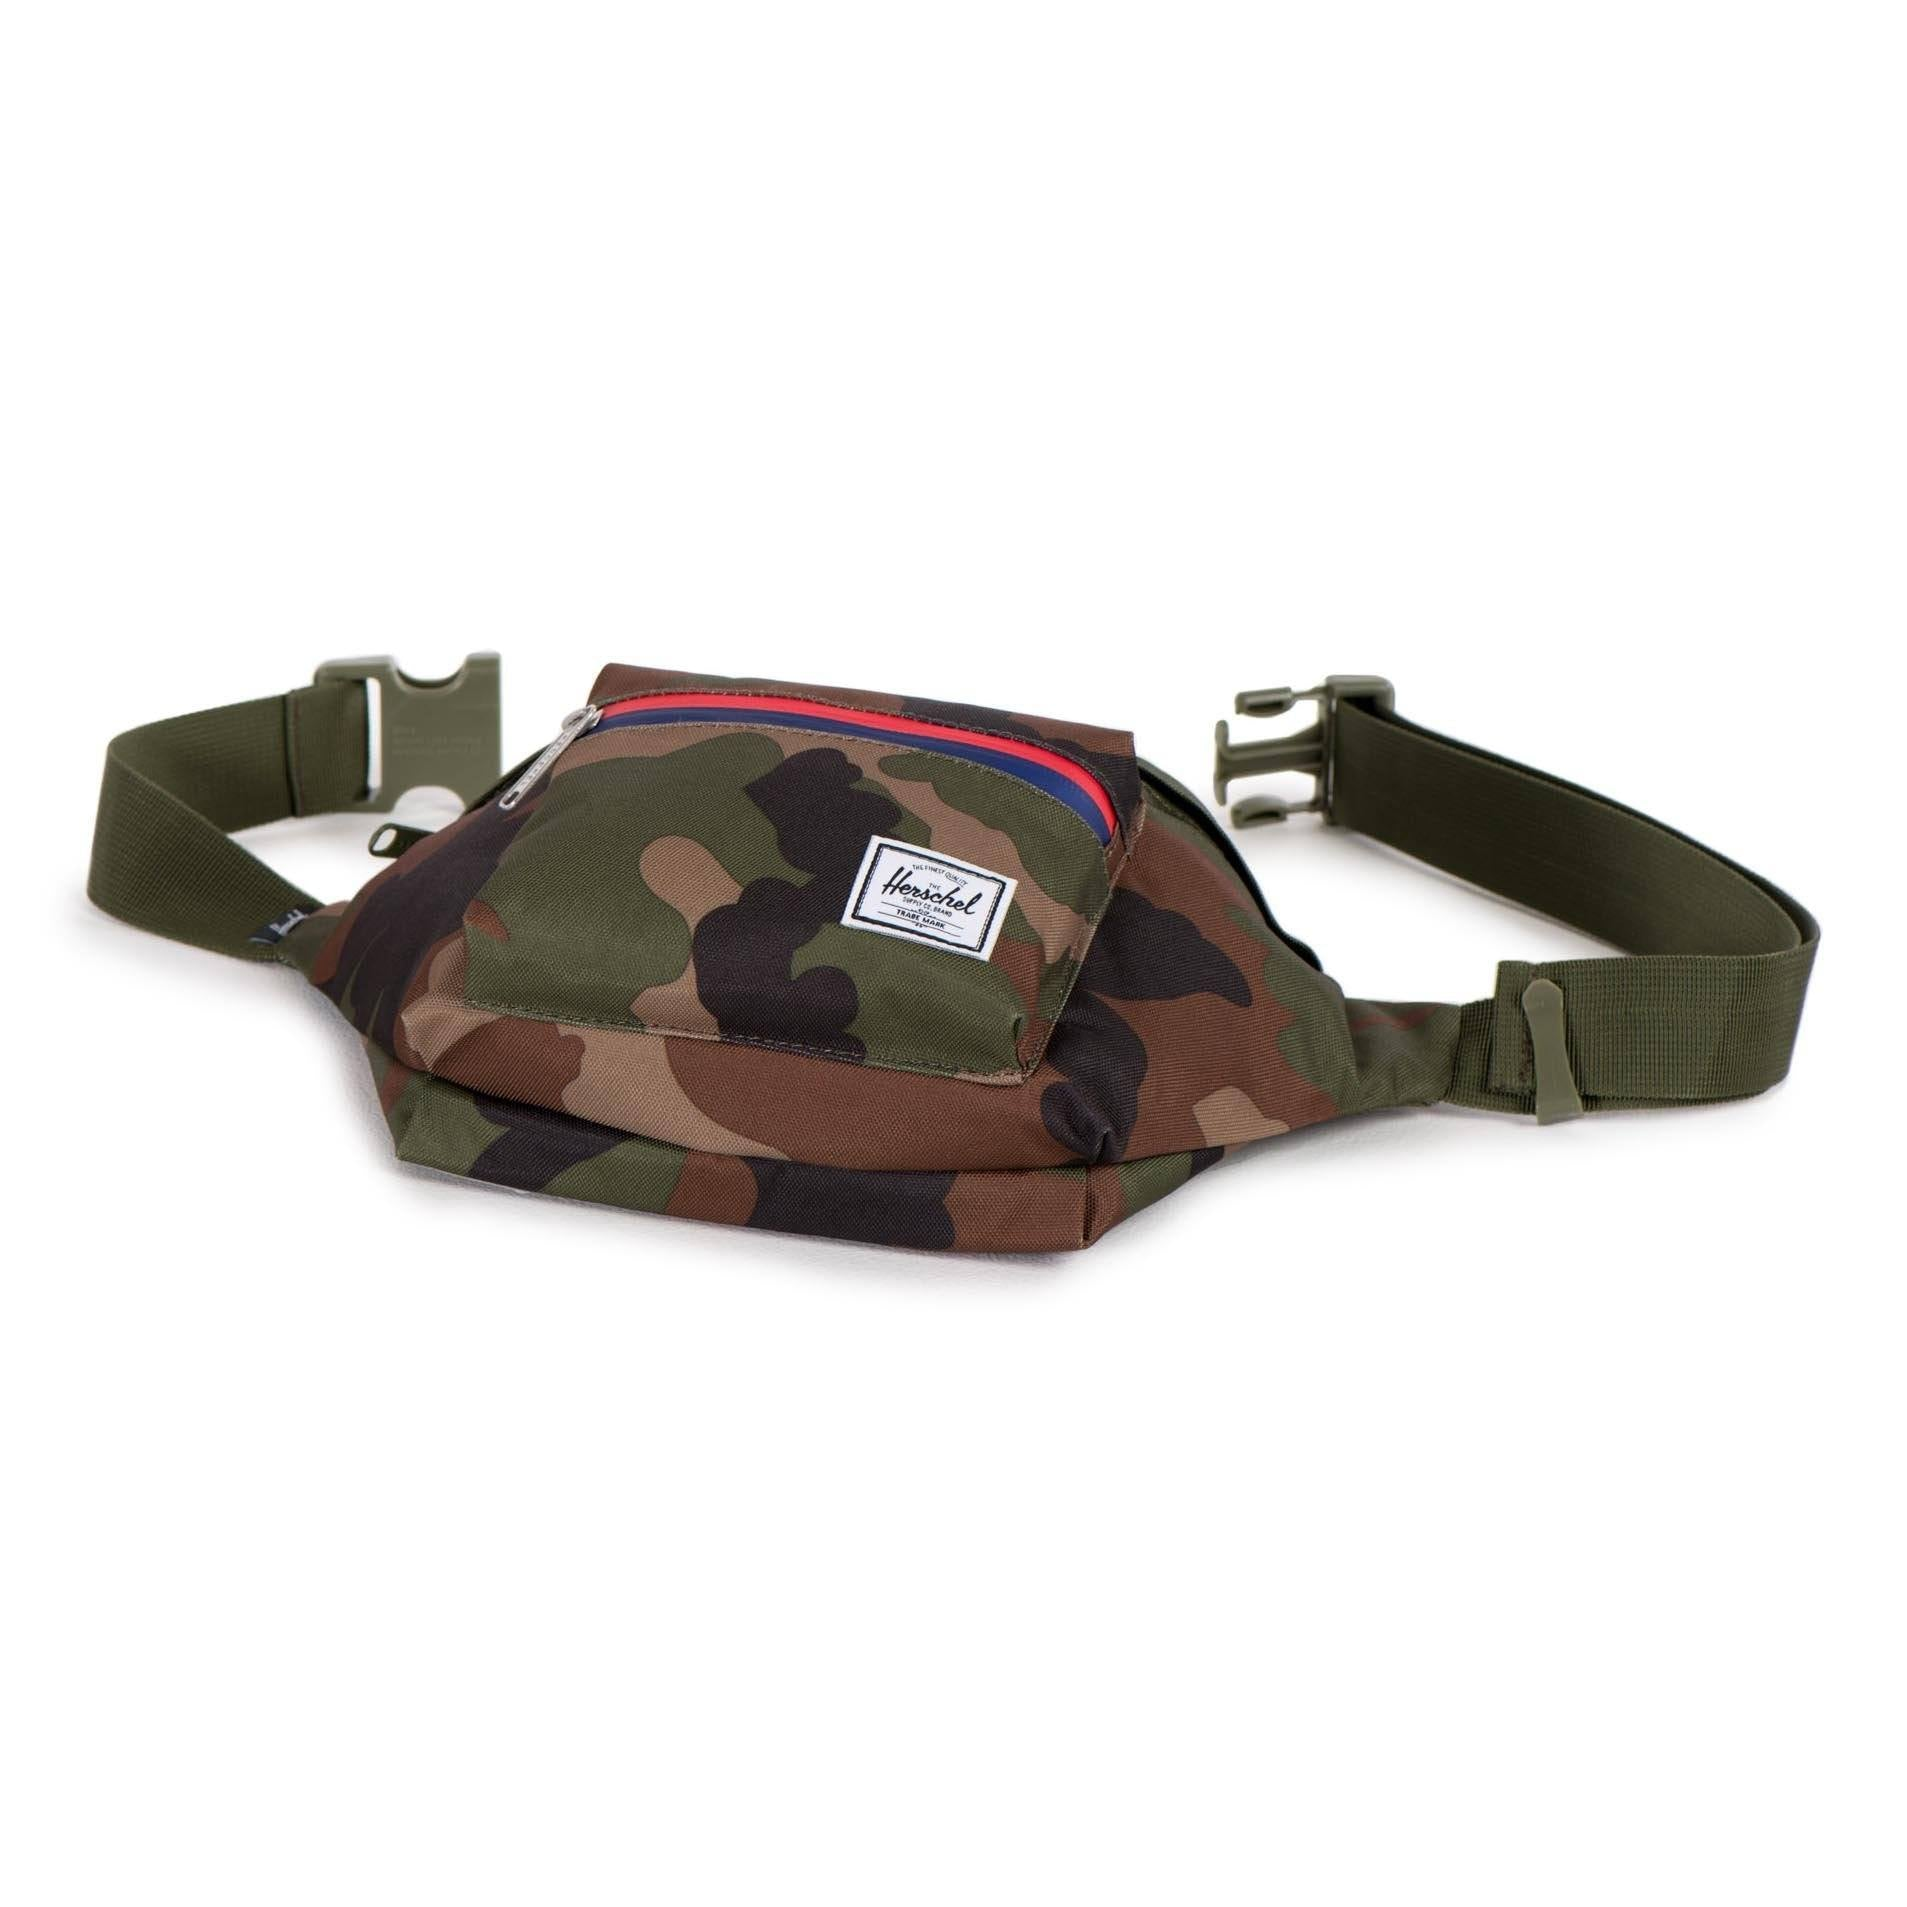 Herschel Supply Co. Seventeen Bag - Woodland Camo